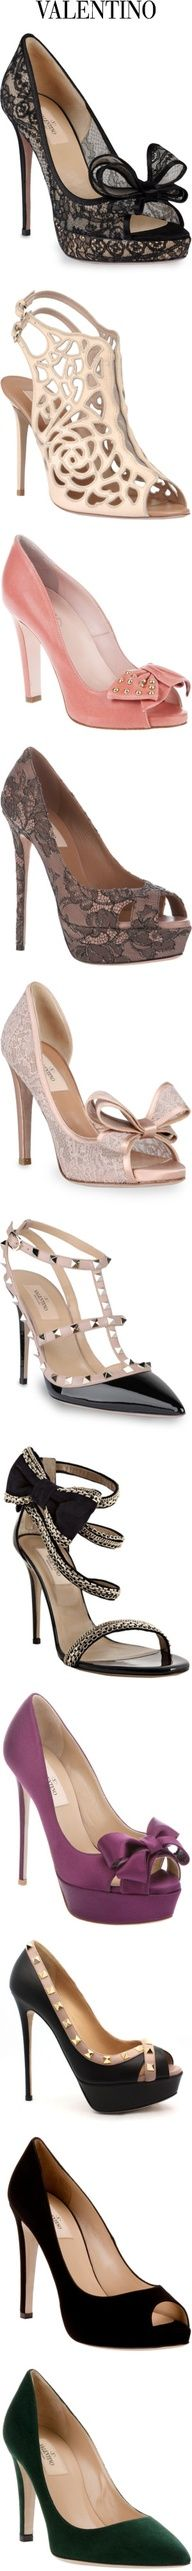 valentino.. I would kill myself in them but at least my feet would look fabulous!